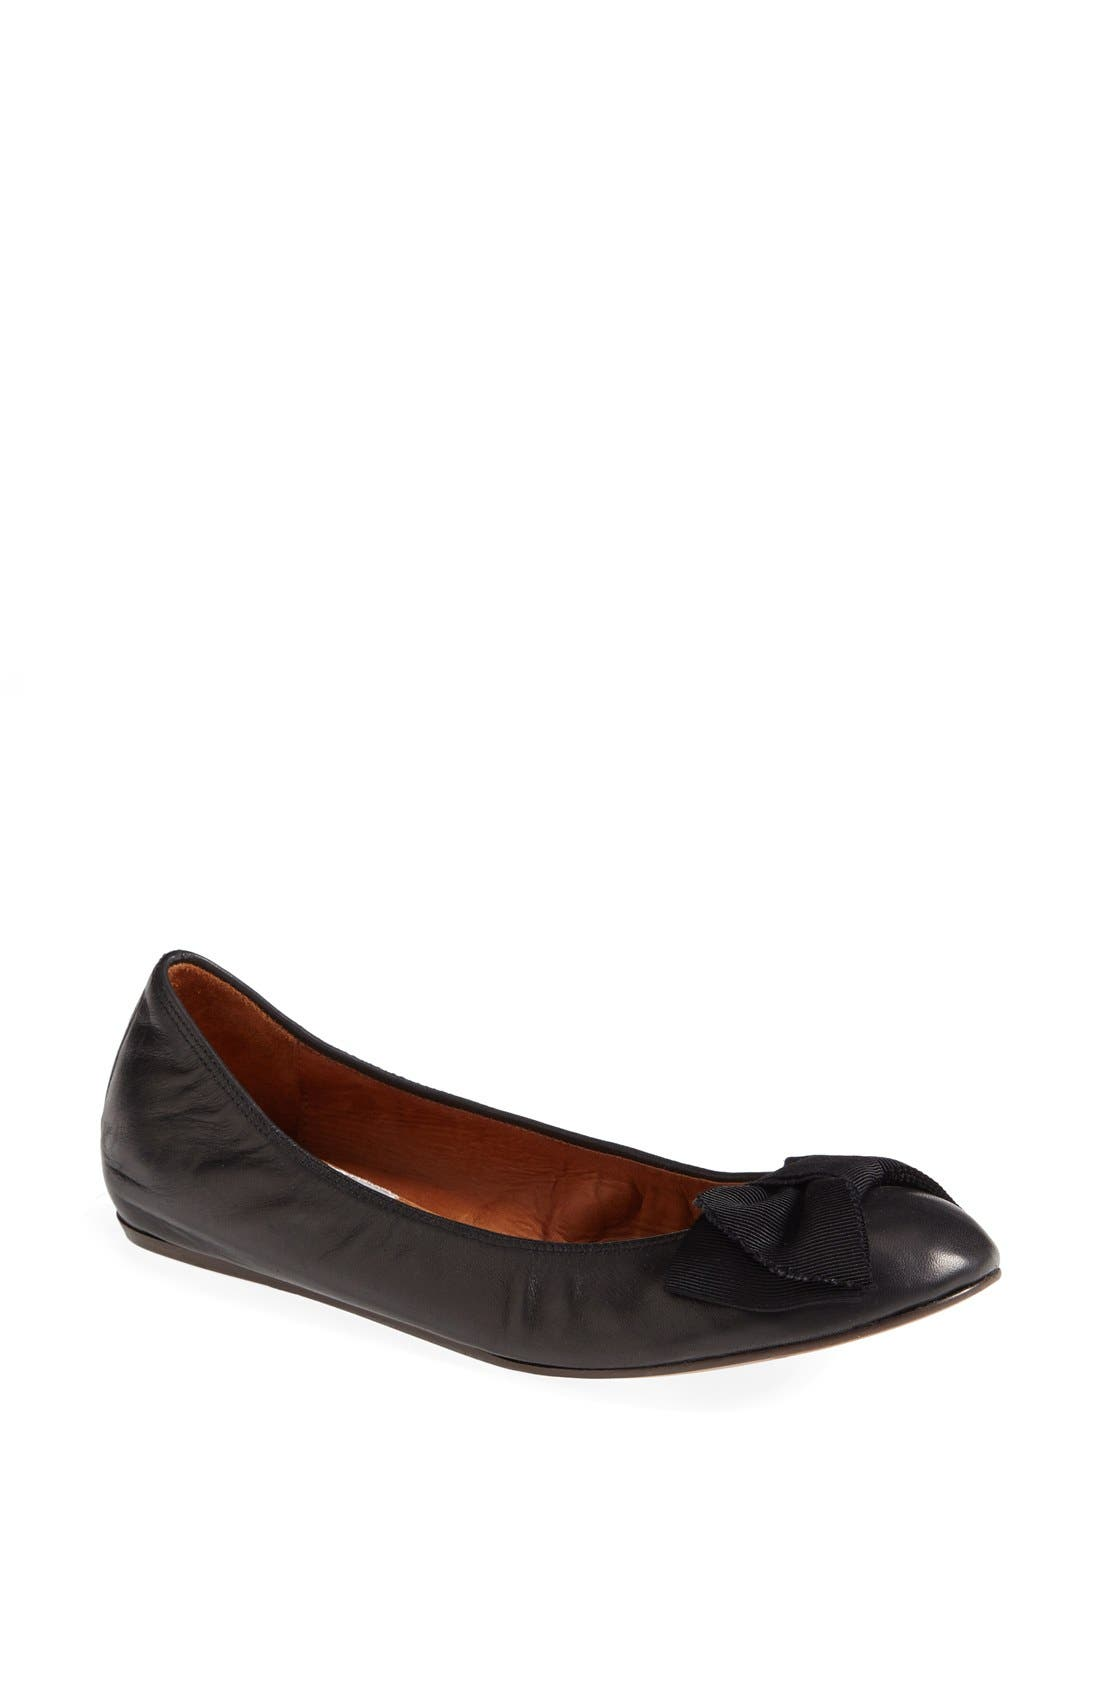 Alternate Image 1 Selected - Lanvin Bow Ballerina Flat (Women)